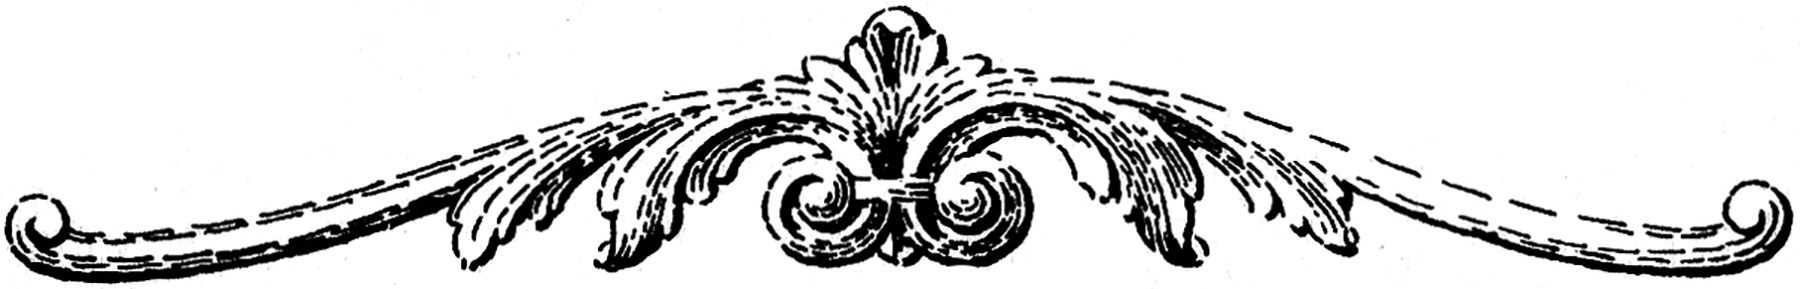 Decoration clipart. Black and white molding